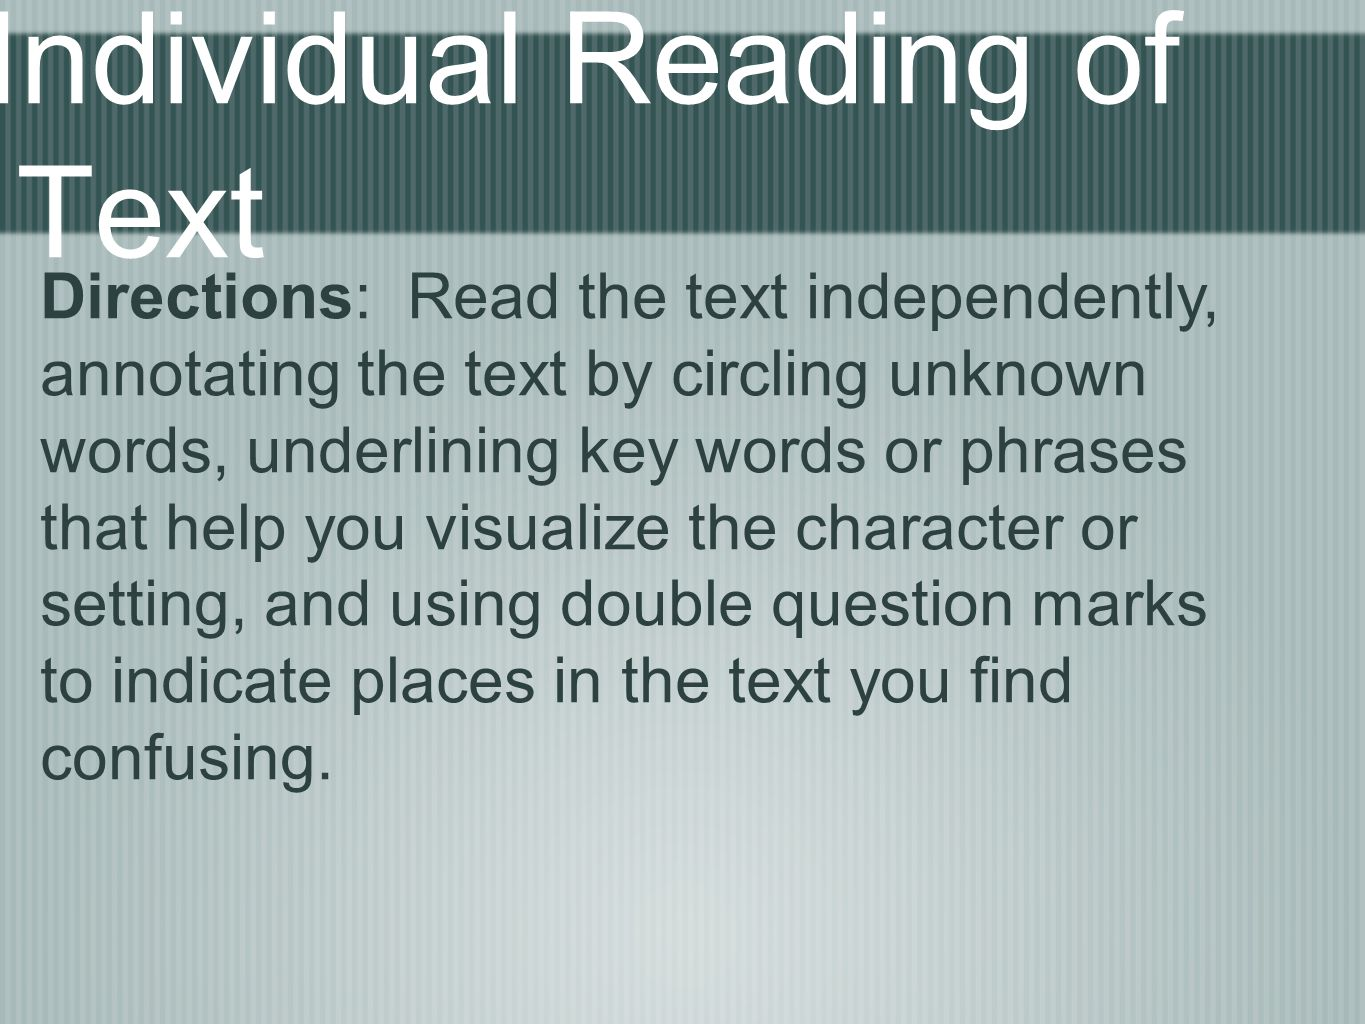 Individual Reading of Text